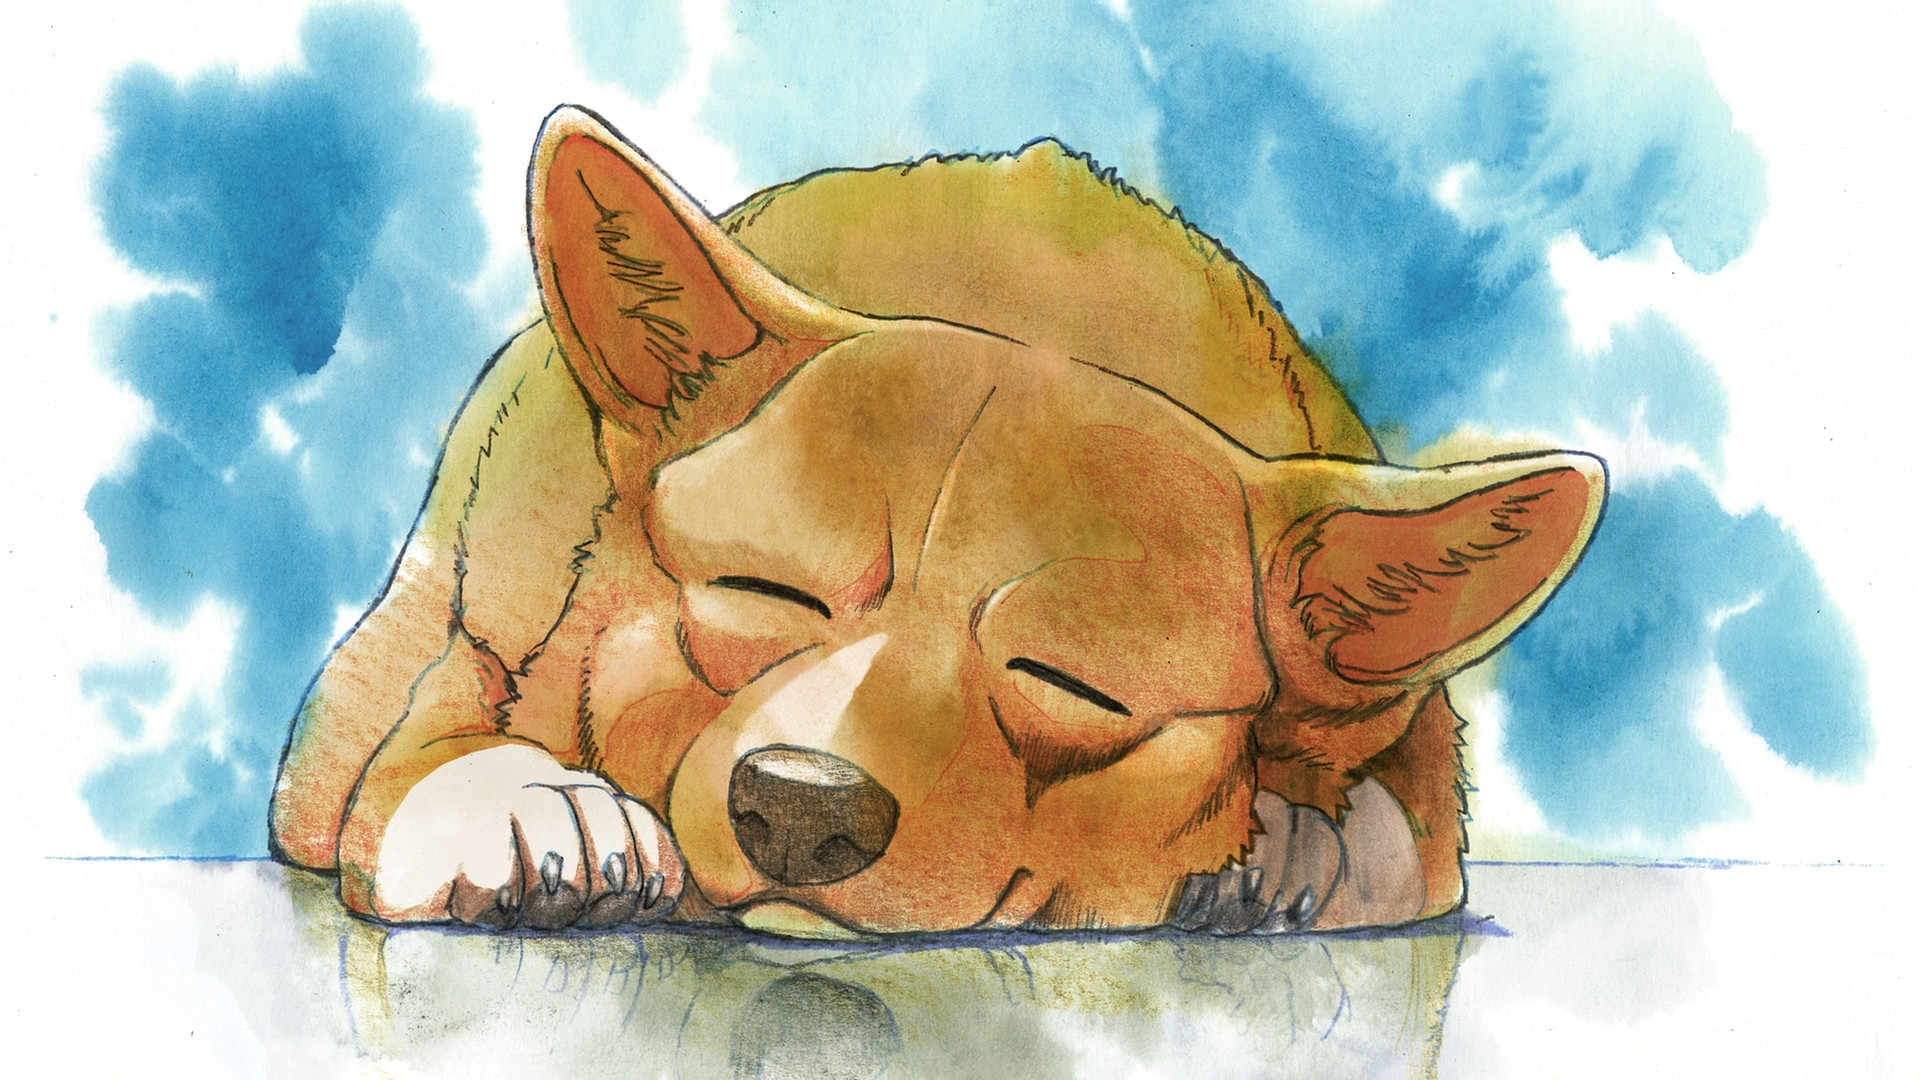 Dog-Drawing-Sleep-art-cartoons-1920x1080-wallpaper-wp3804603